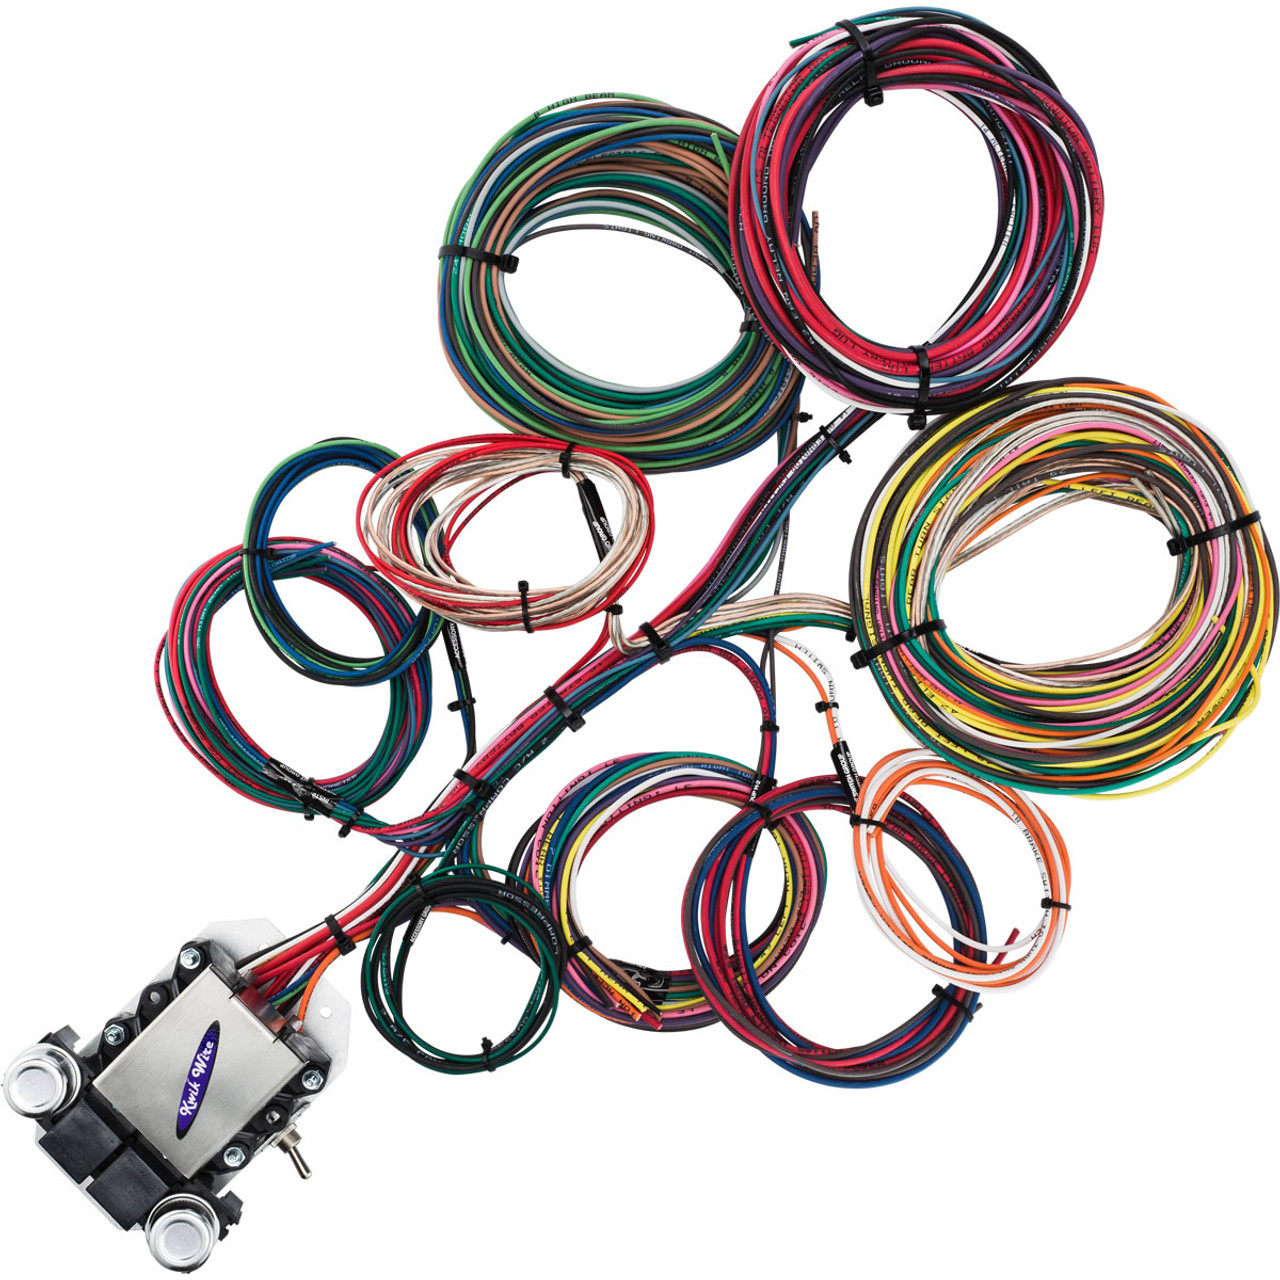 Terrific 14 Circuit Wire Harness Kwikwire Com Electrify Your Ride Wiring Cloud Oideiuggs Outletorg